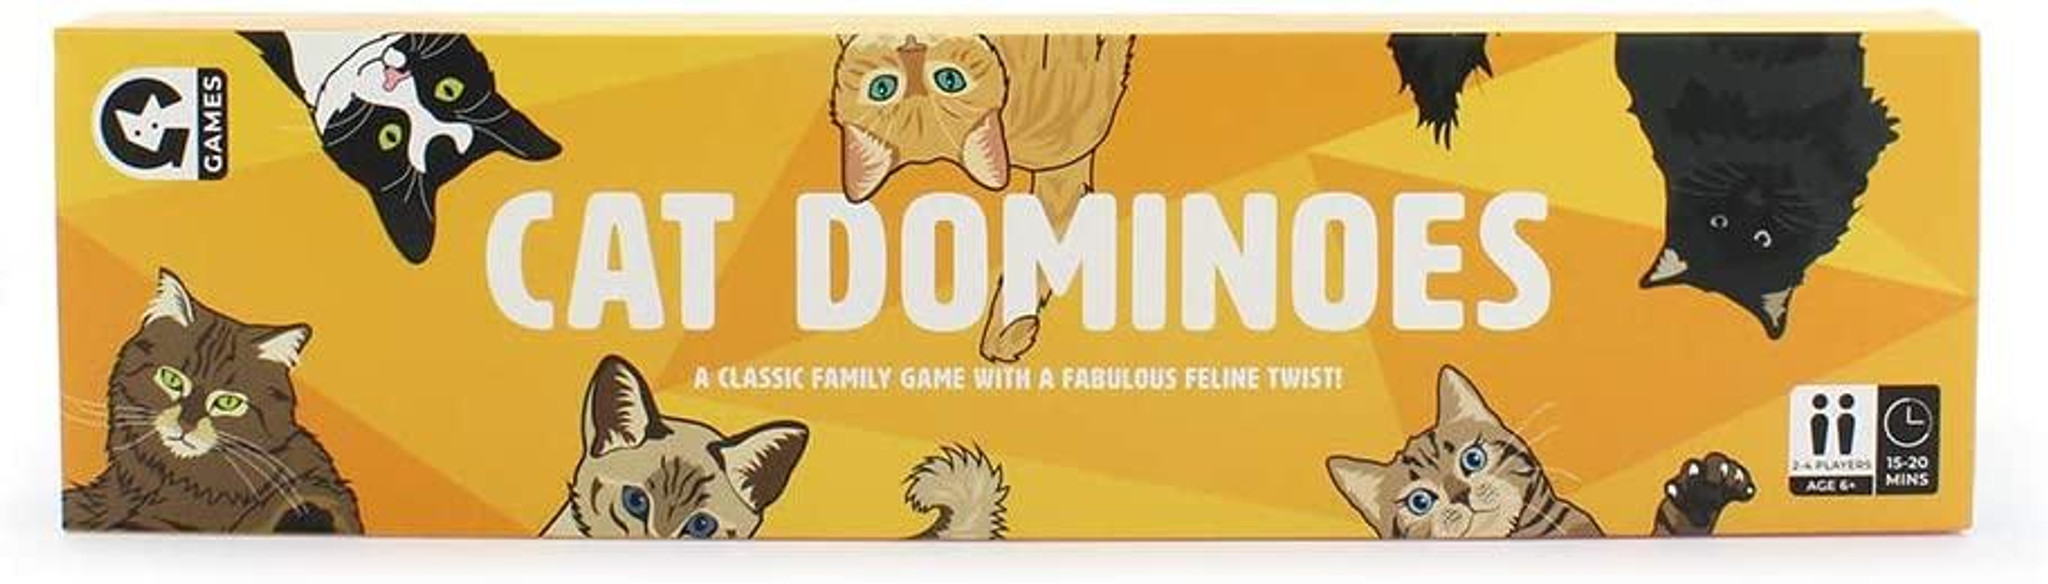 Match Pairs of Pussycats to Become The Cats Whiskers for Cat Lovers Cat Dominoes is the game that all cat-lovers will want to get their claws on! ...